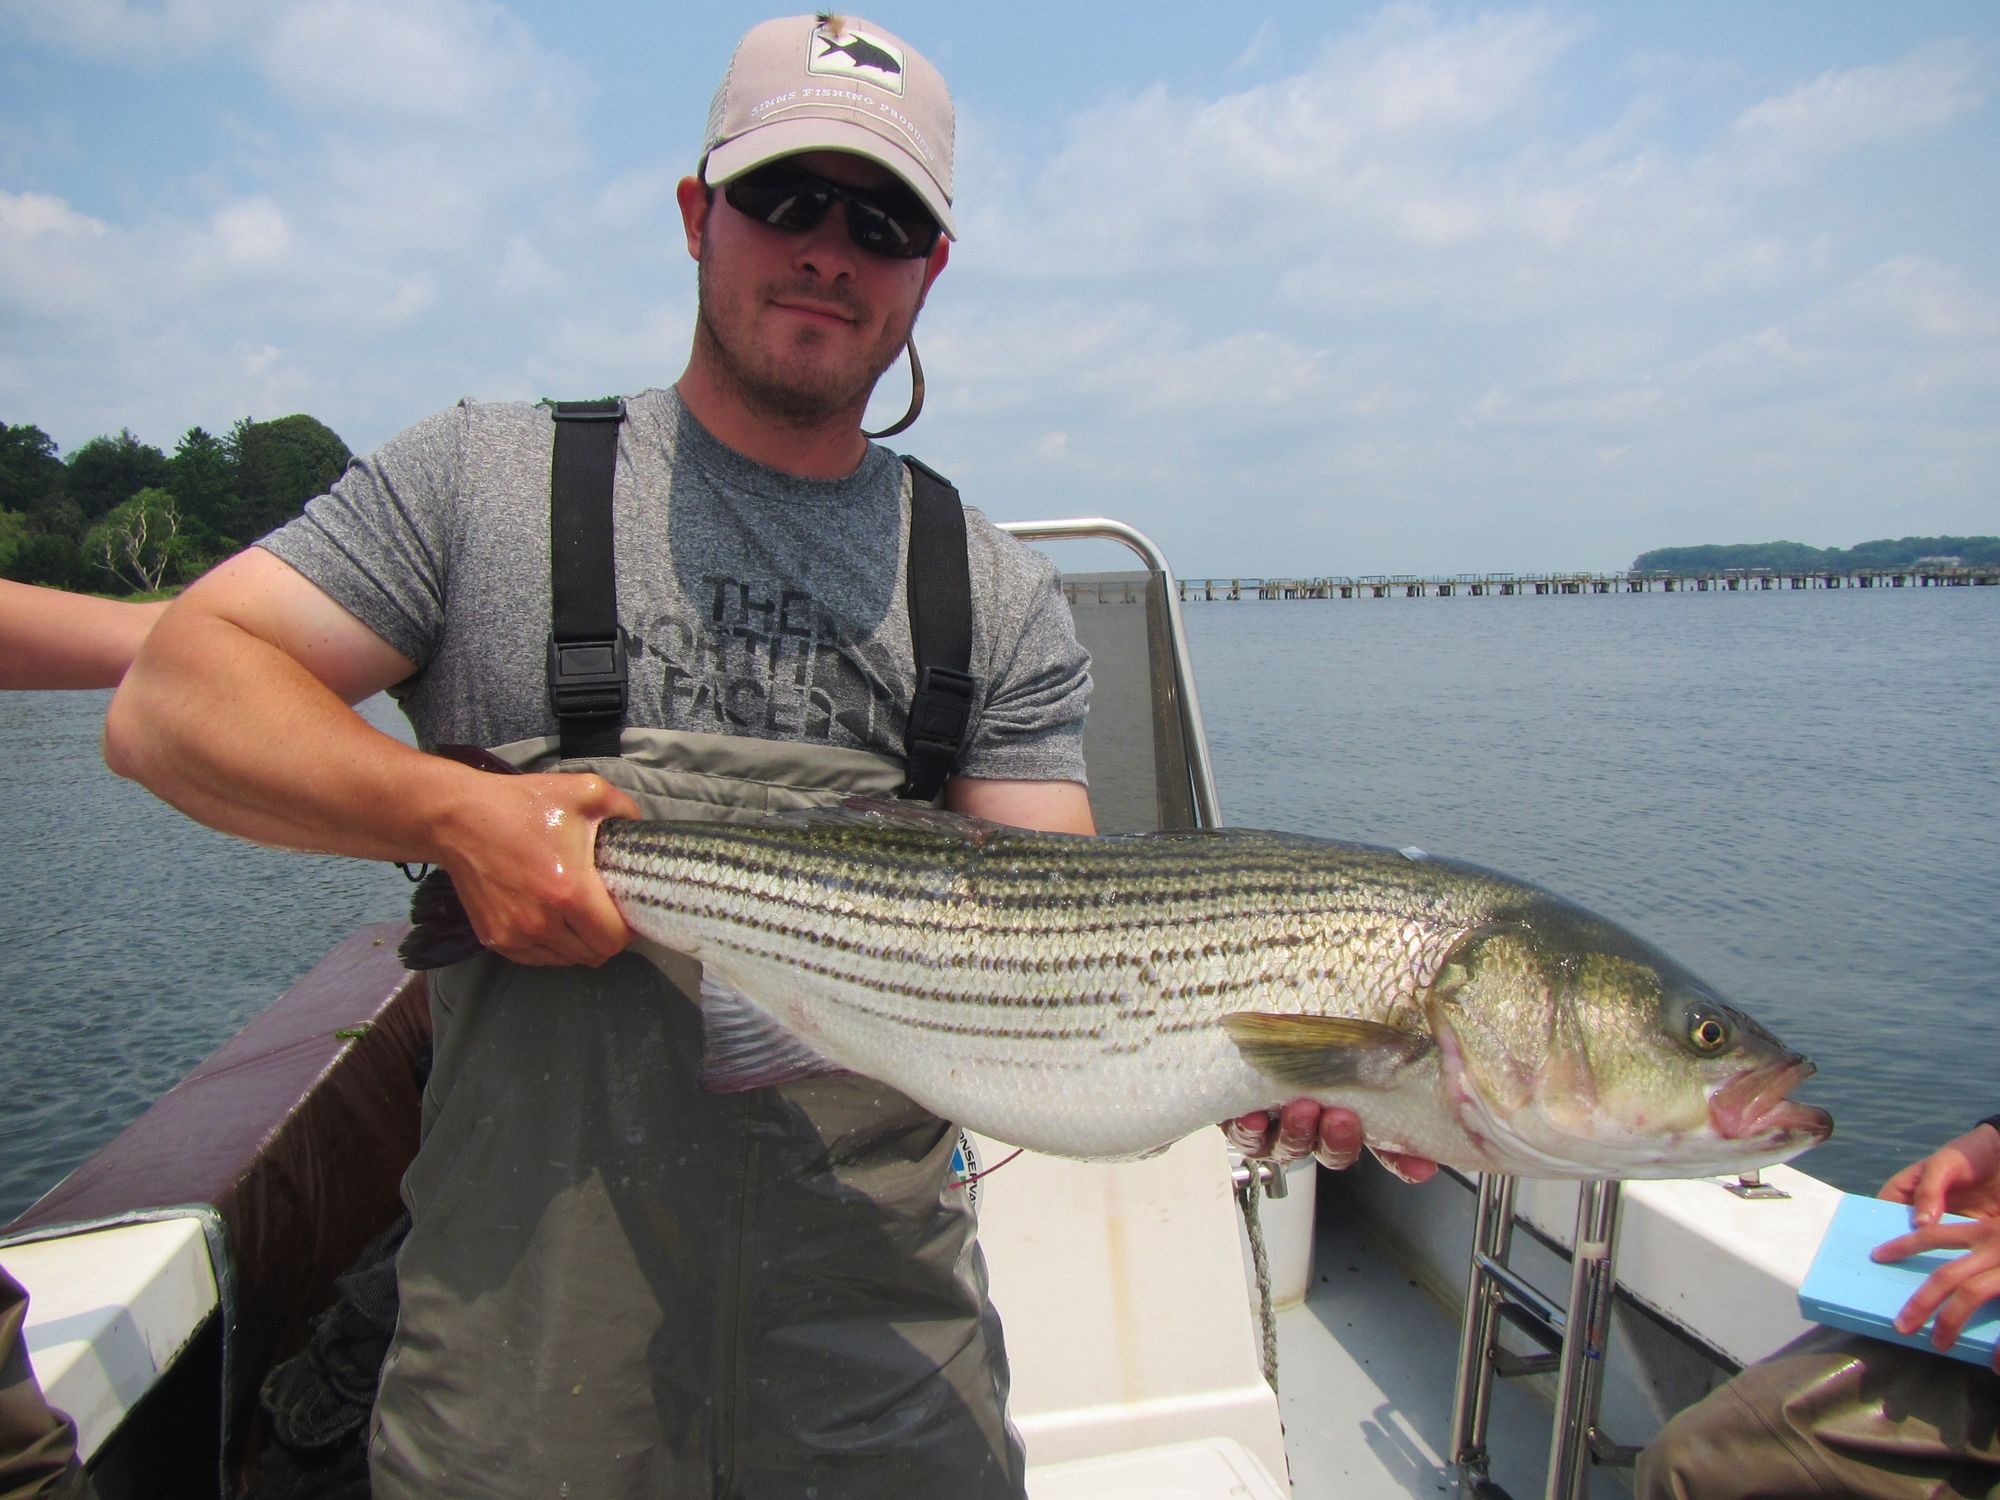 Man holding striped bass on boat